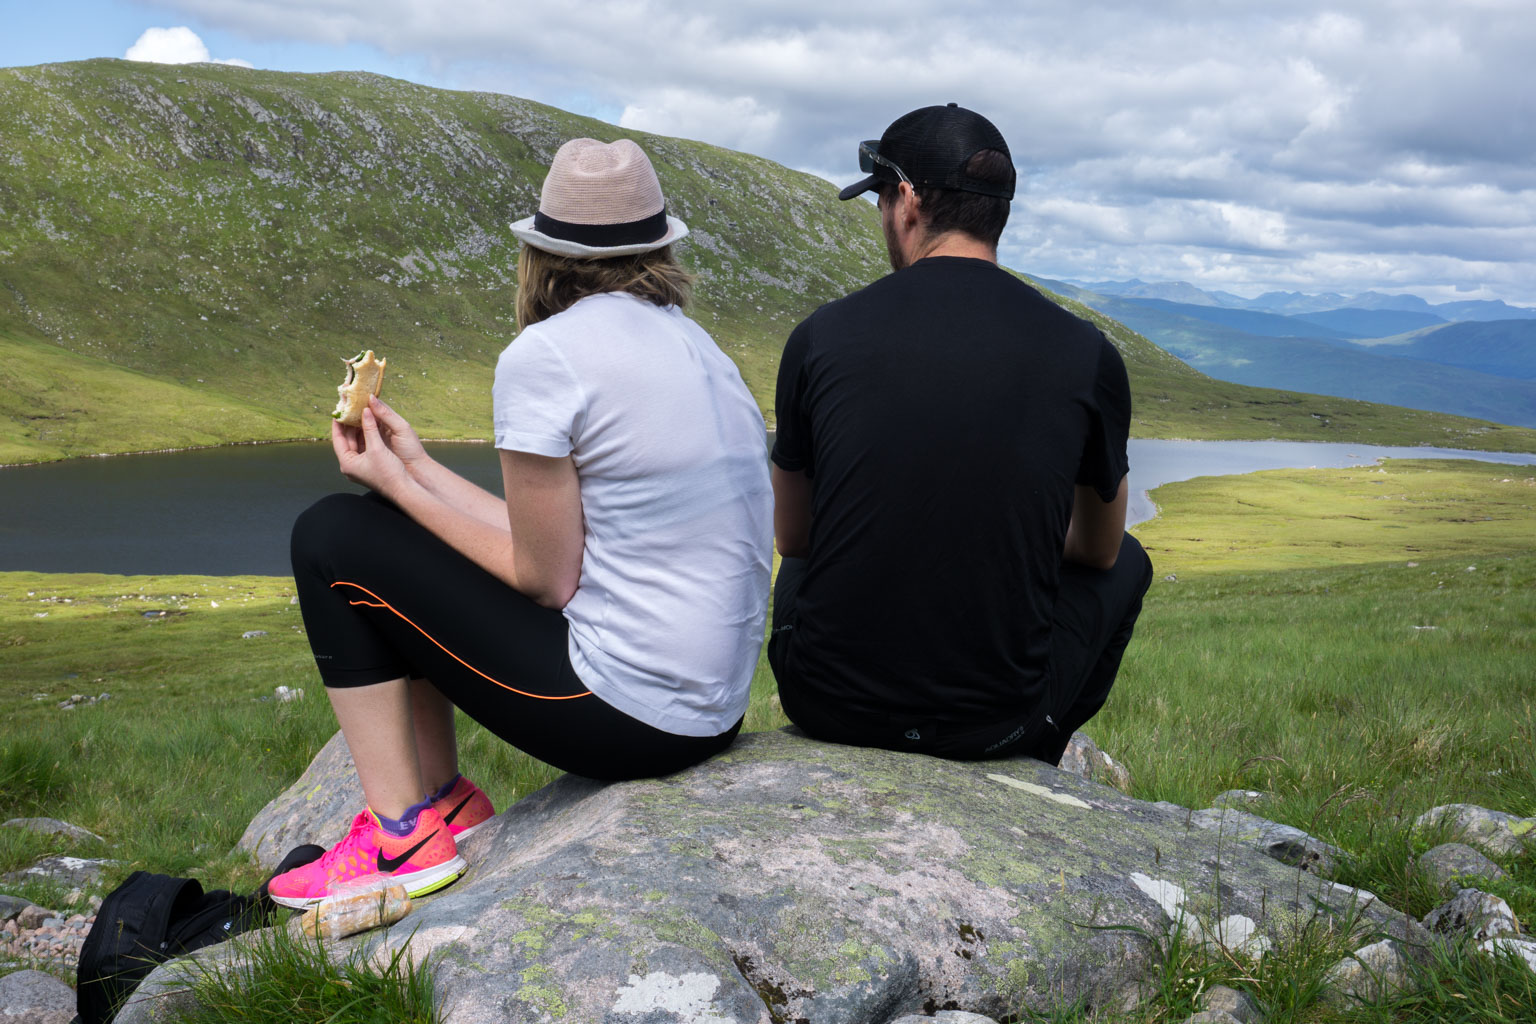 The Two Drifters having a break, admiring the view and enjoying lunch while Climbing Ben Nevis, Scotland